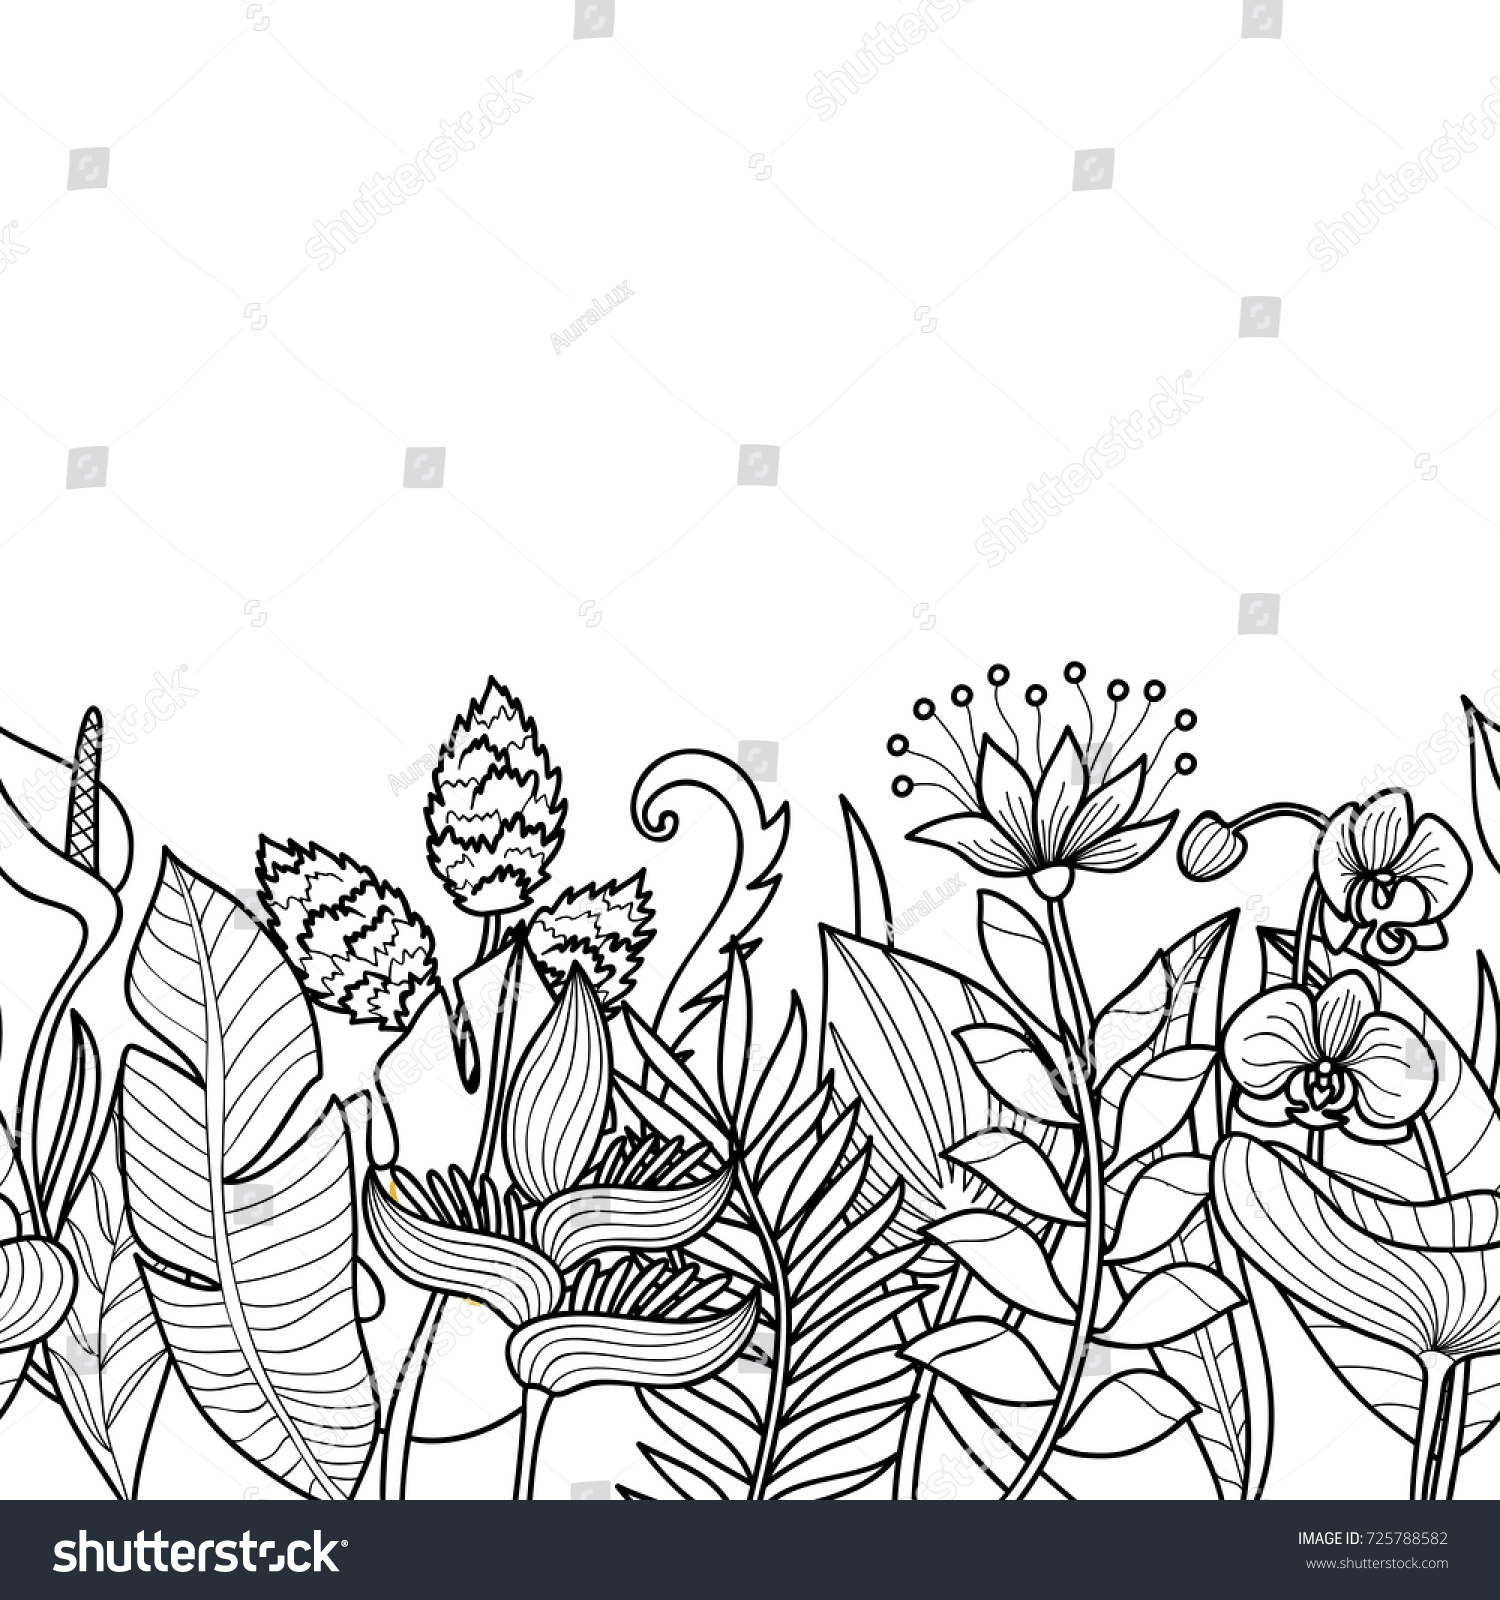 Tropical Flowers Plants Seamless Border Floral Stock Vector Royalty